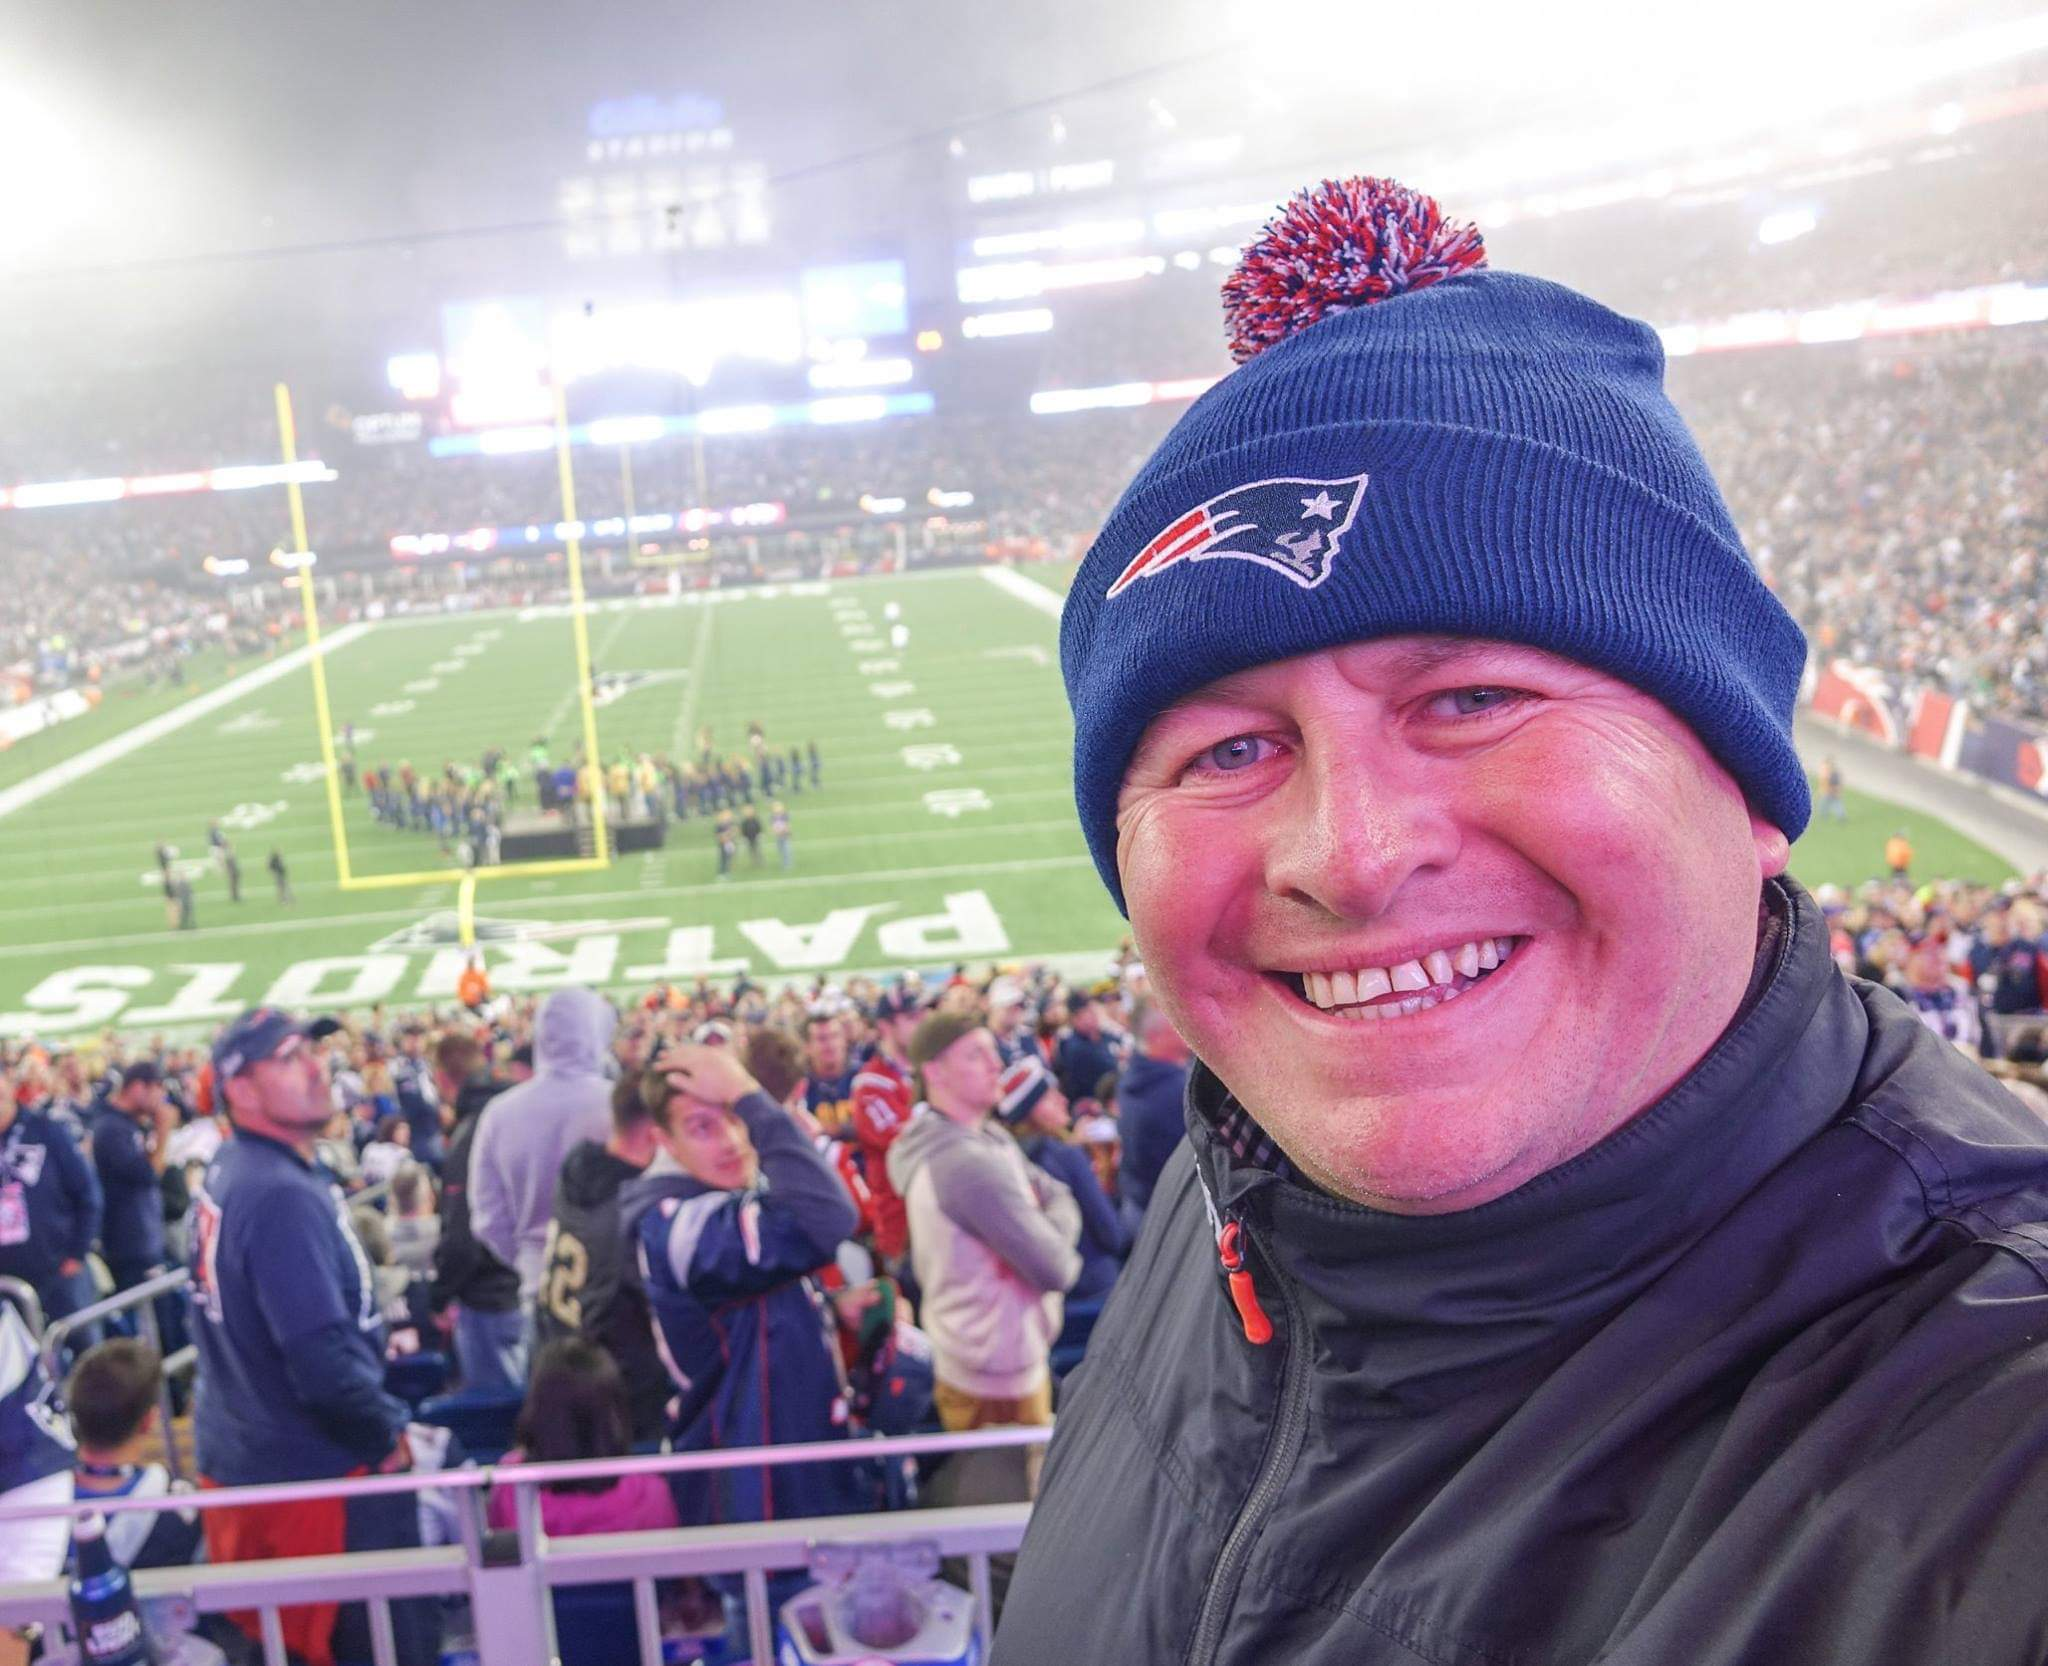 Boston, USA. Watching the mighty New England Patriots